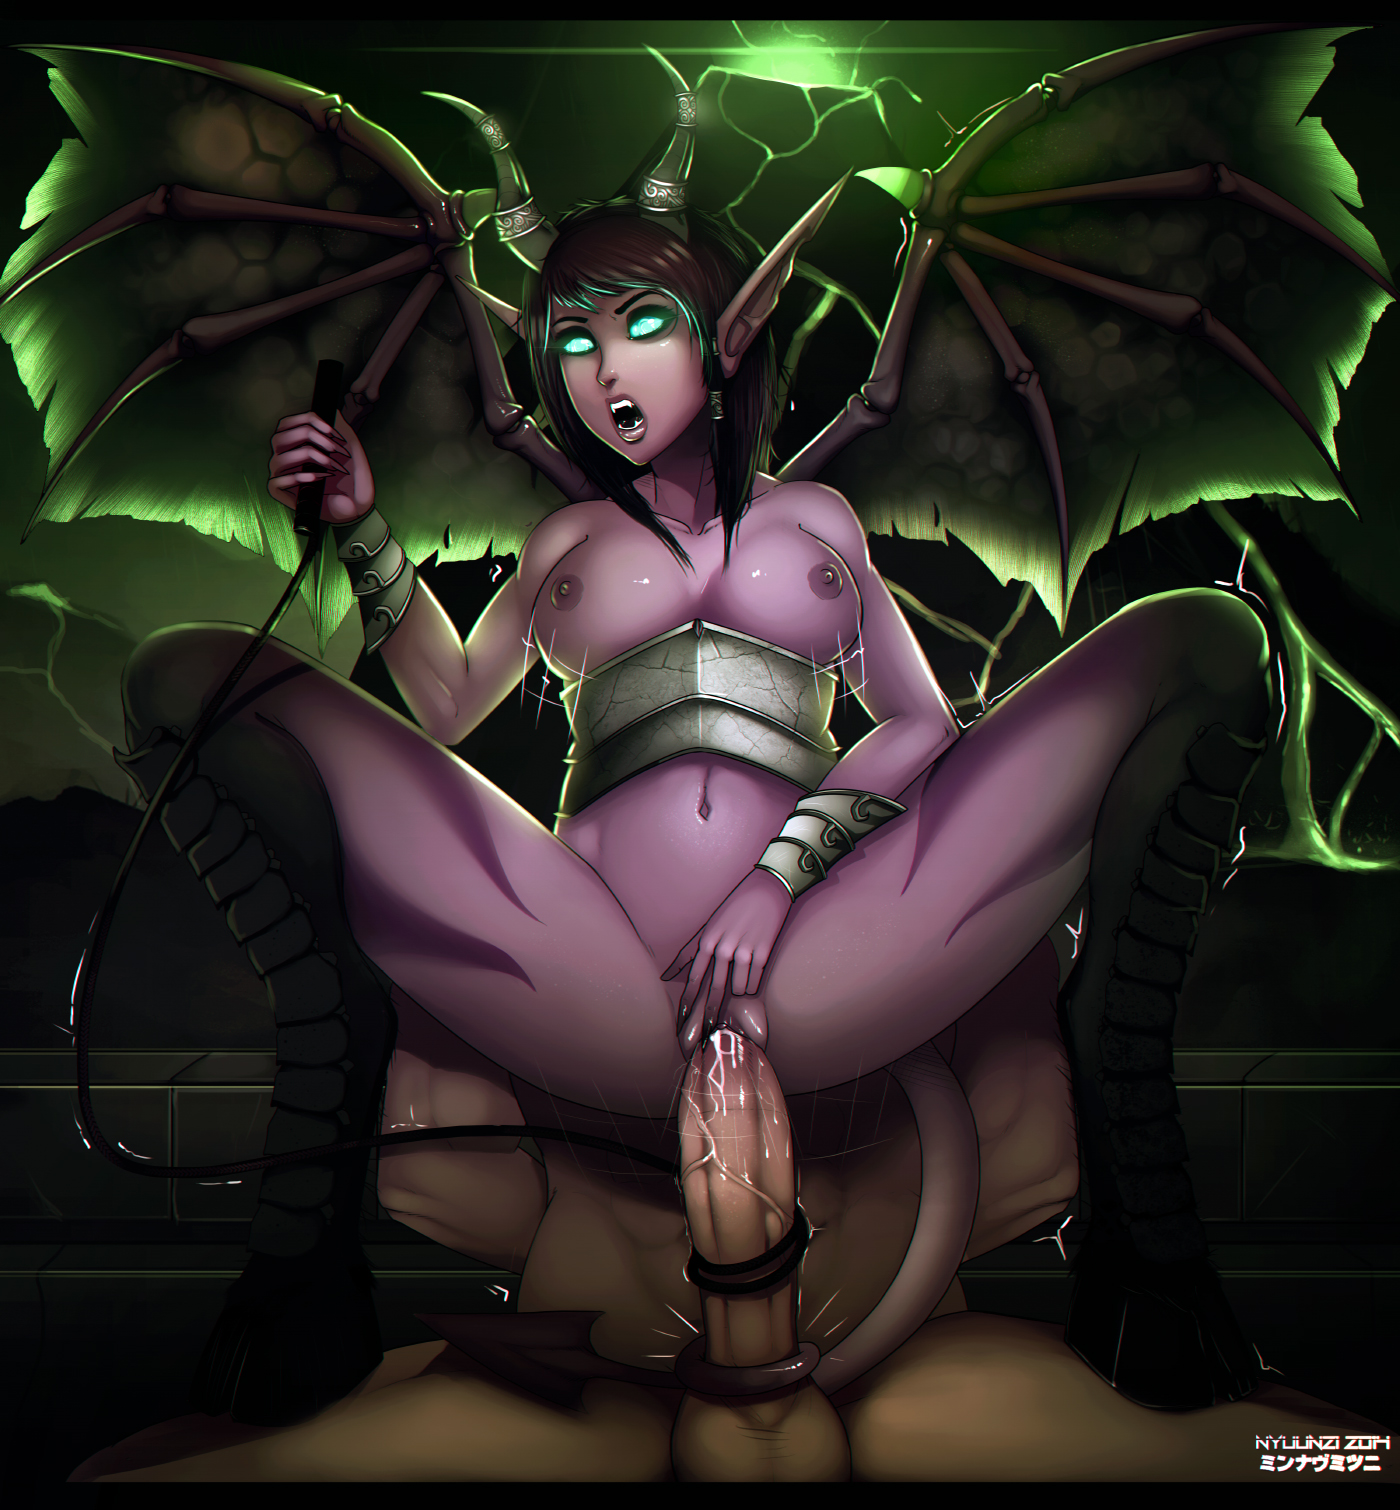 World of warcraft succubus fuck erotica boobs